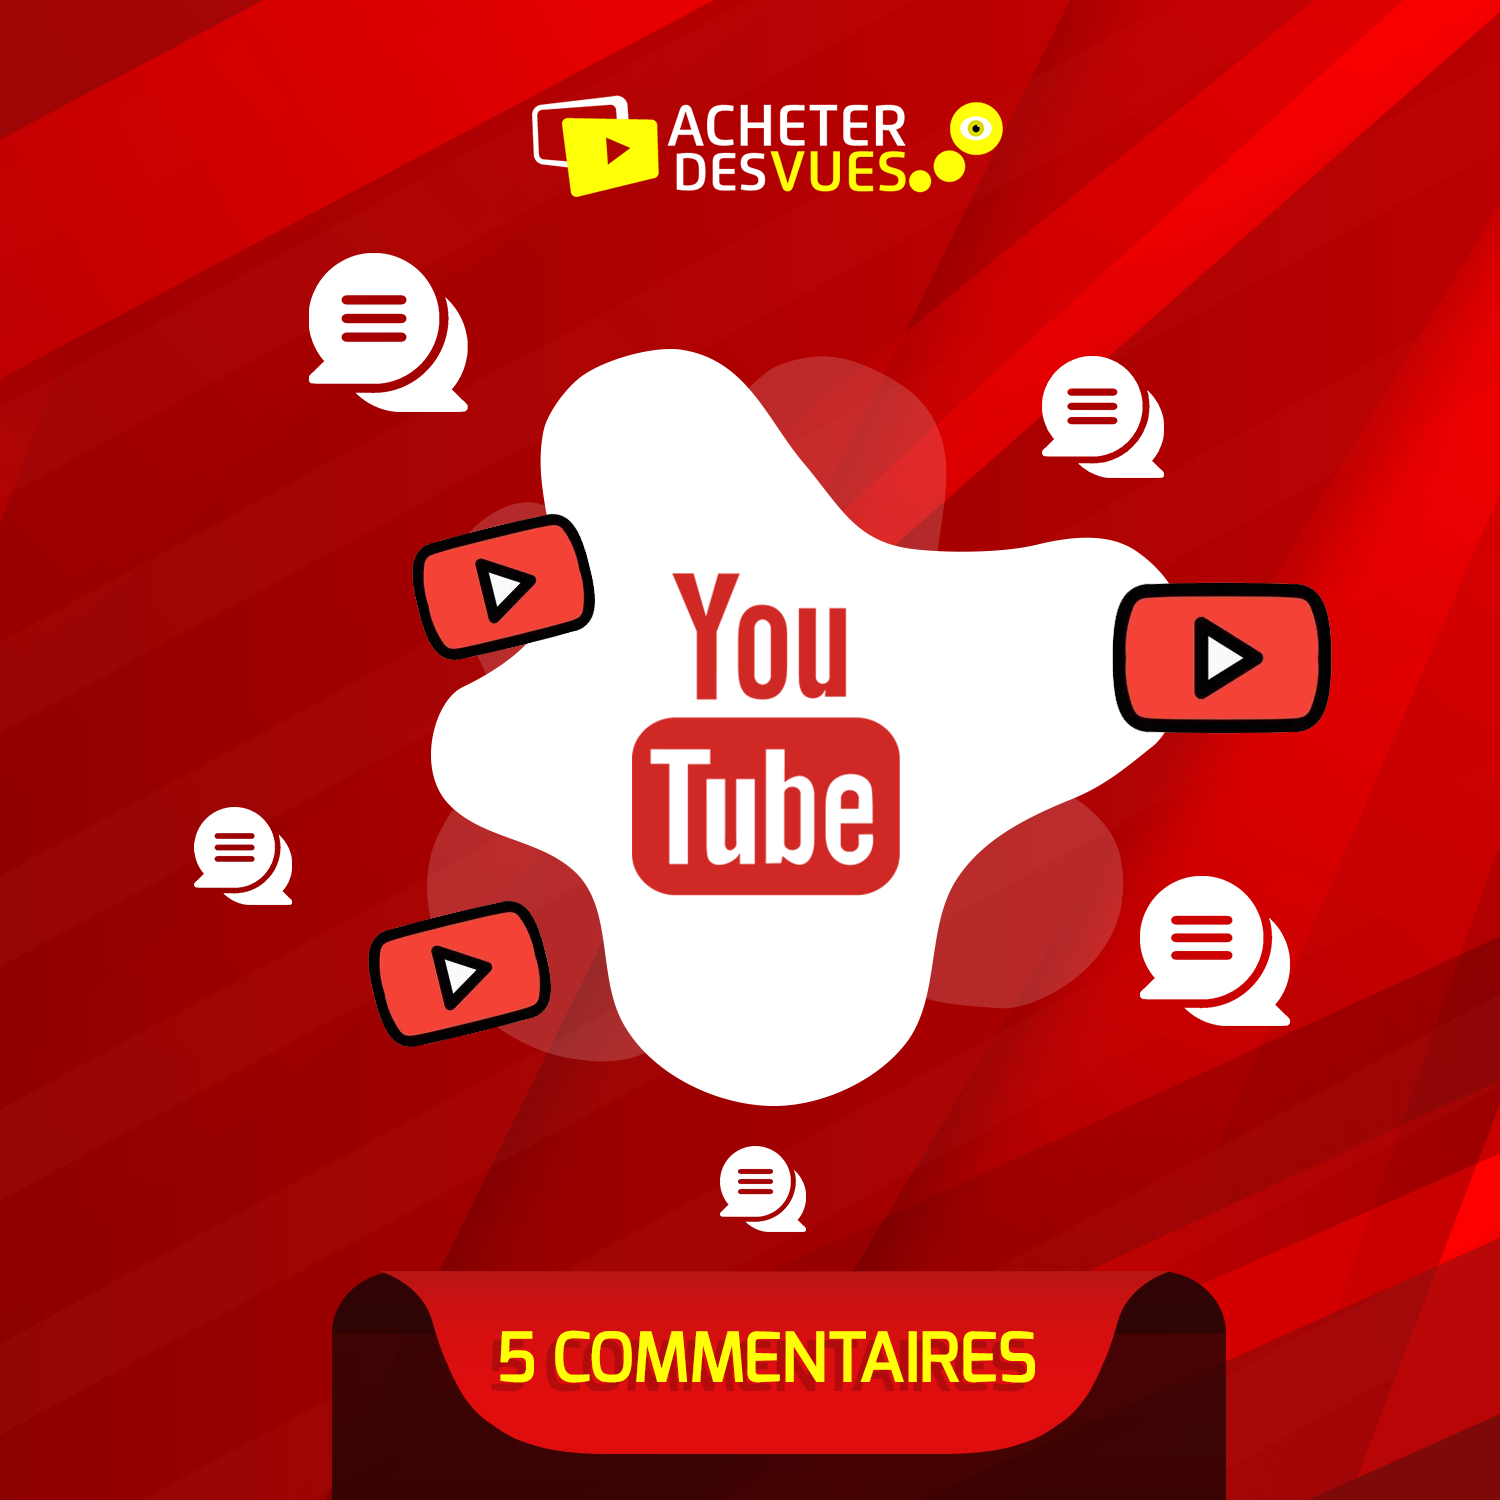 Acheter 5 commentaires YouTube